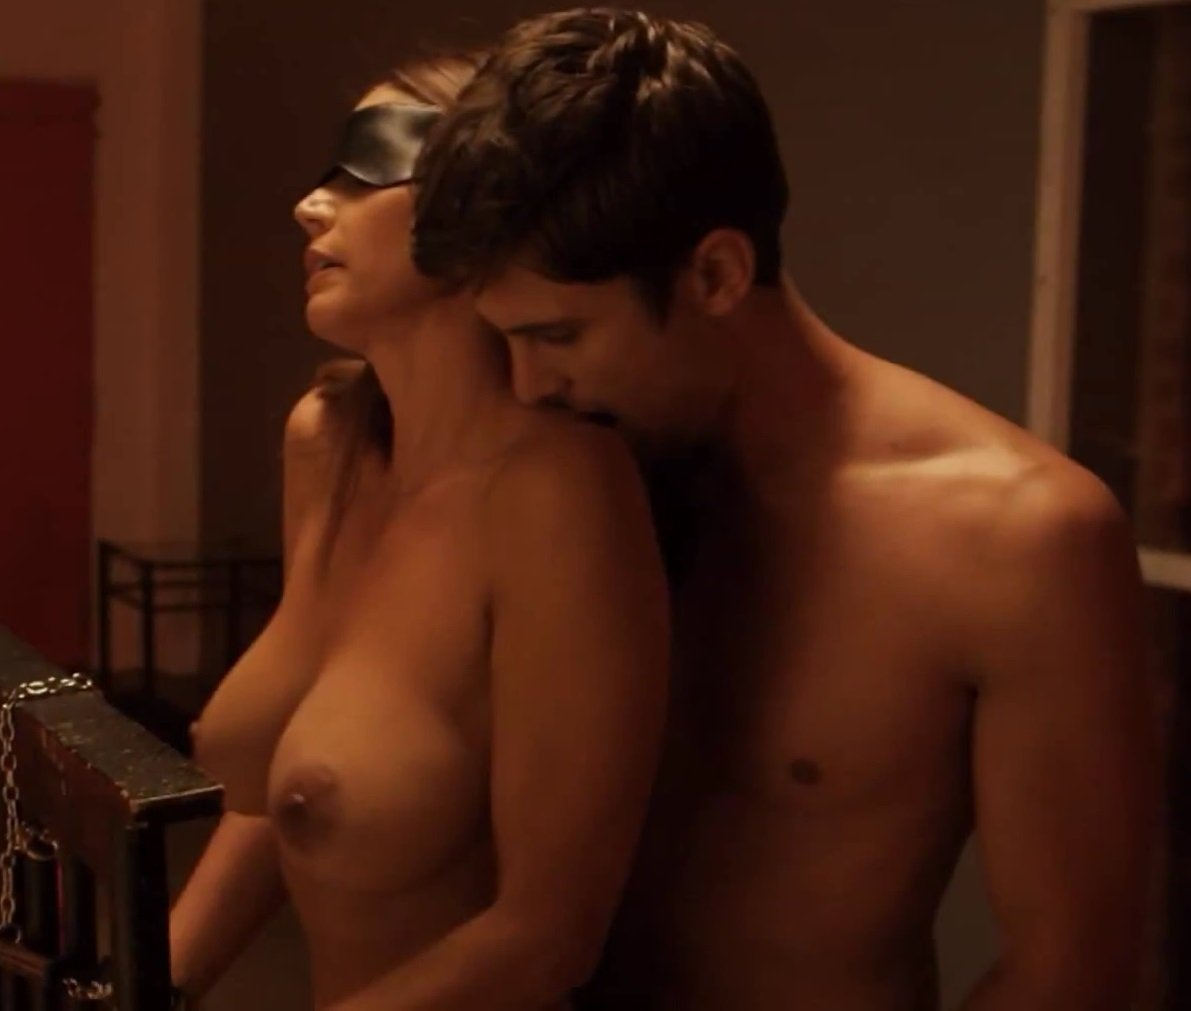 Charisma Carpenter's Nude Scenes From The Movie 'Bound'